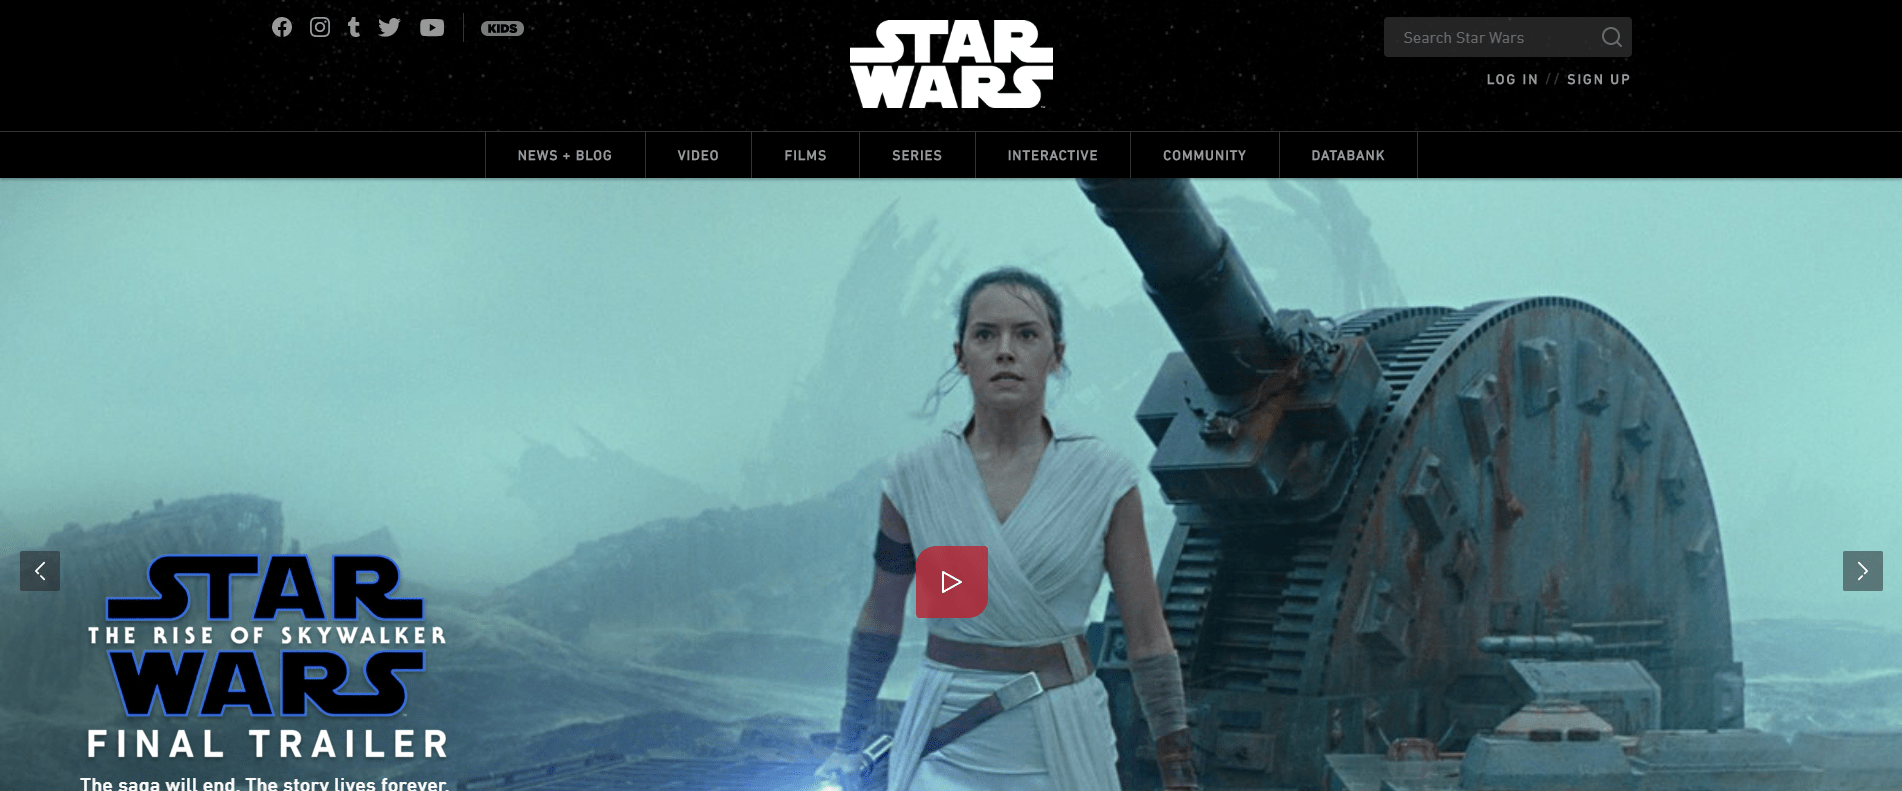 Star war with WordPress